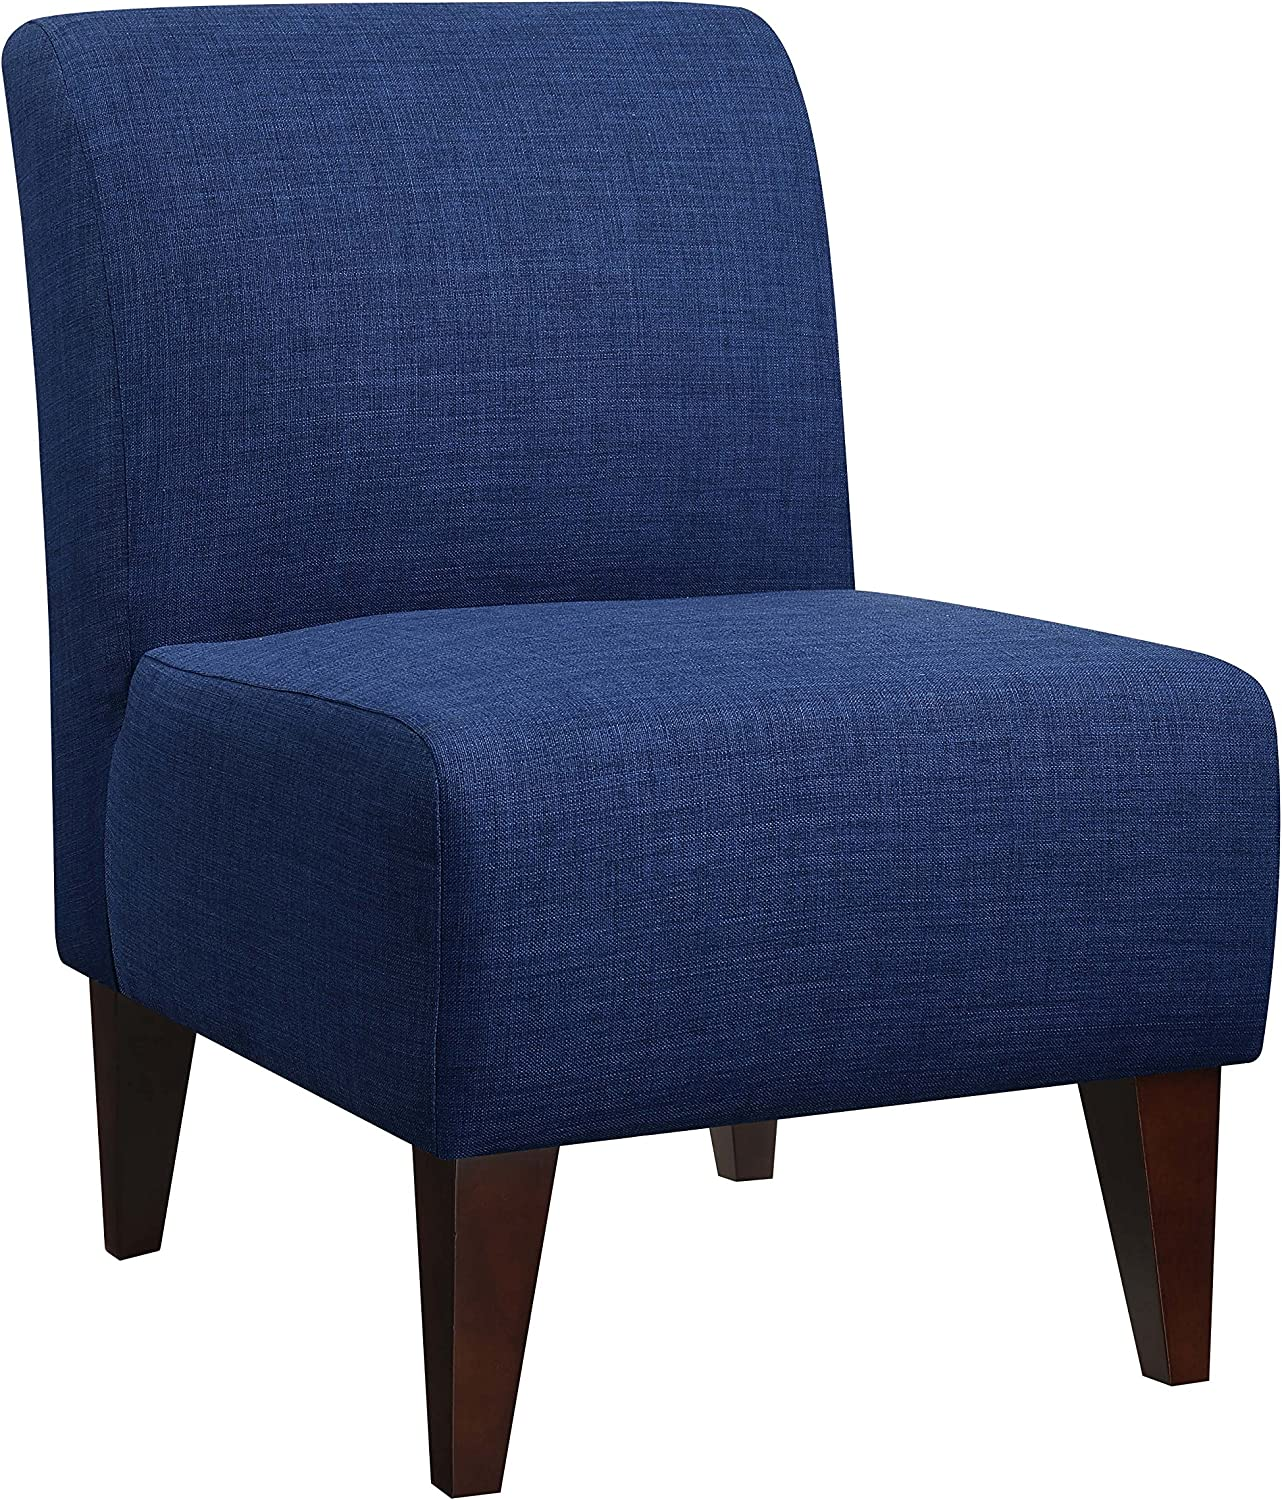 favorite Abbey Avenue Lauren Accent Slipper Pattern Chair Blue We OFFer at cheap prices